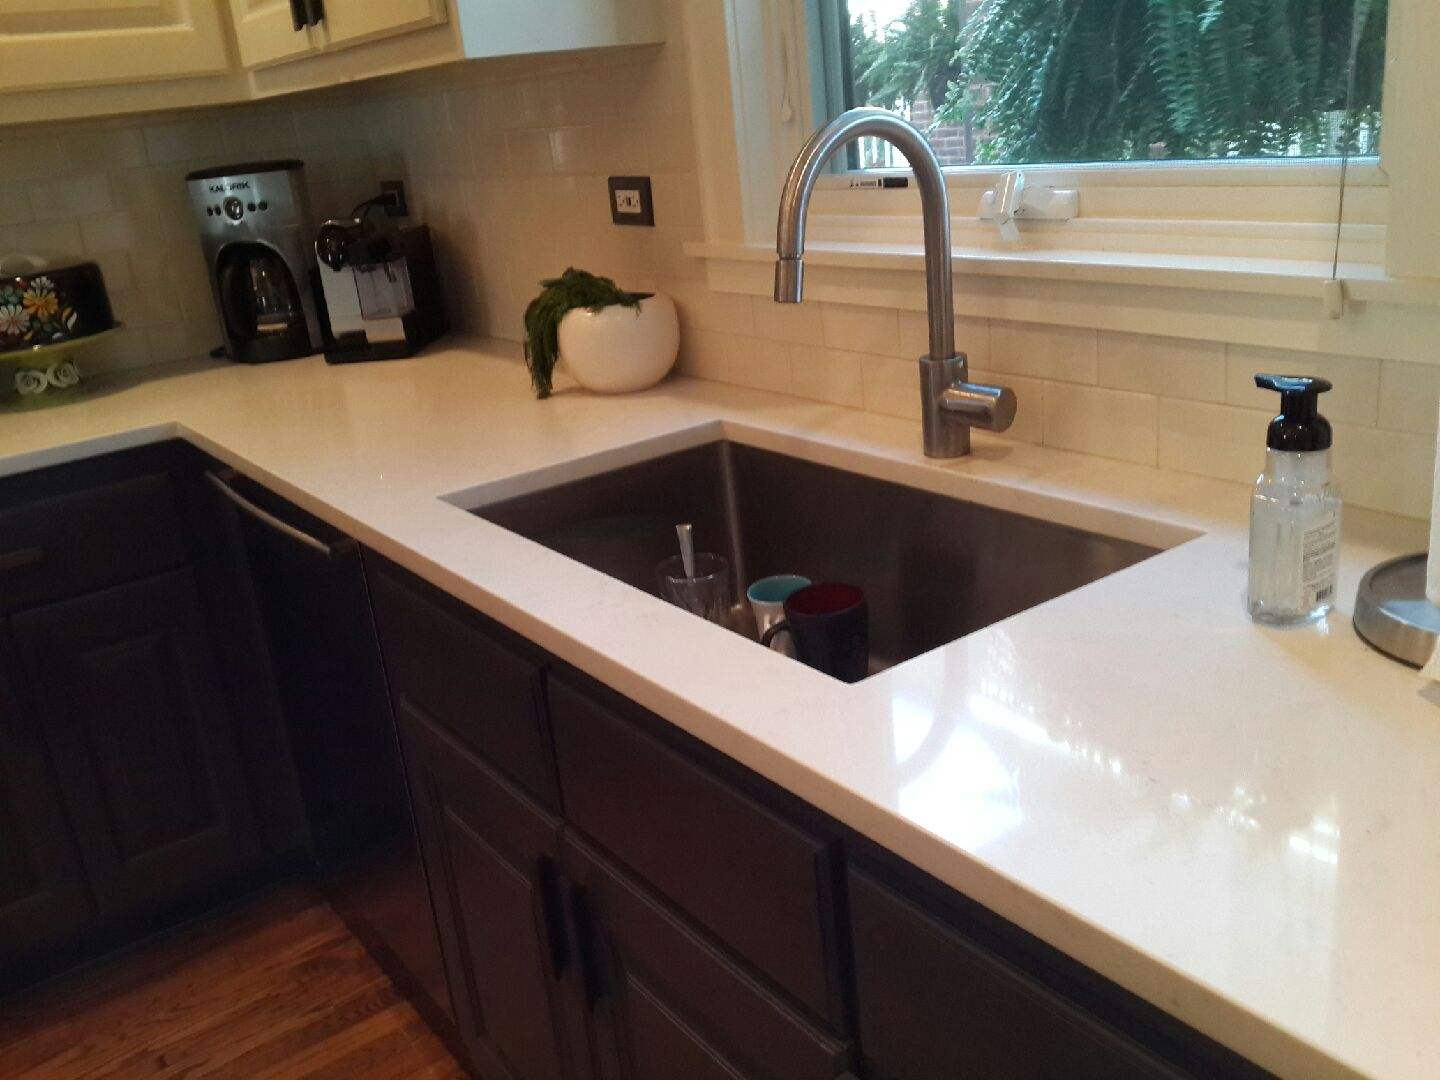 Cesar Countertop Ldk Countertops Chicago Granite Countertops Fabricators